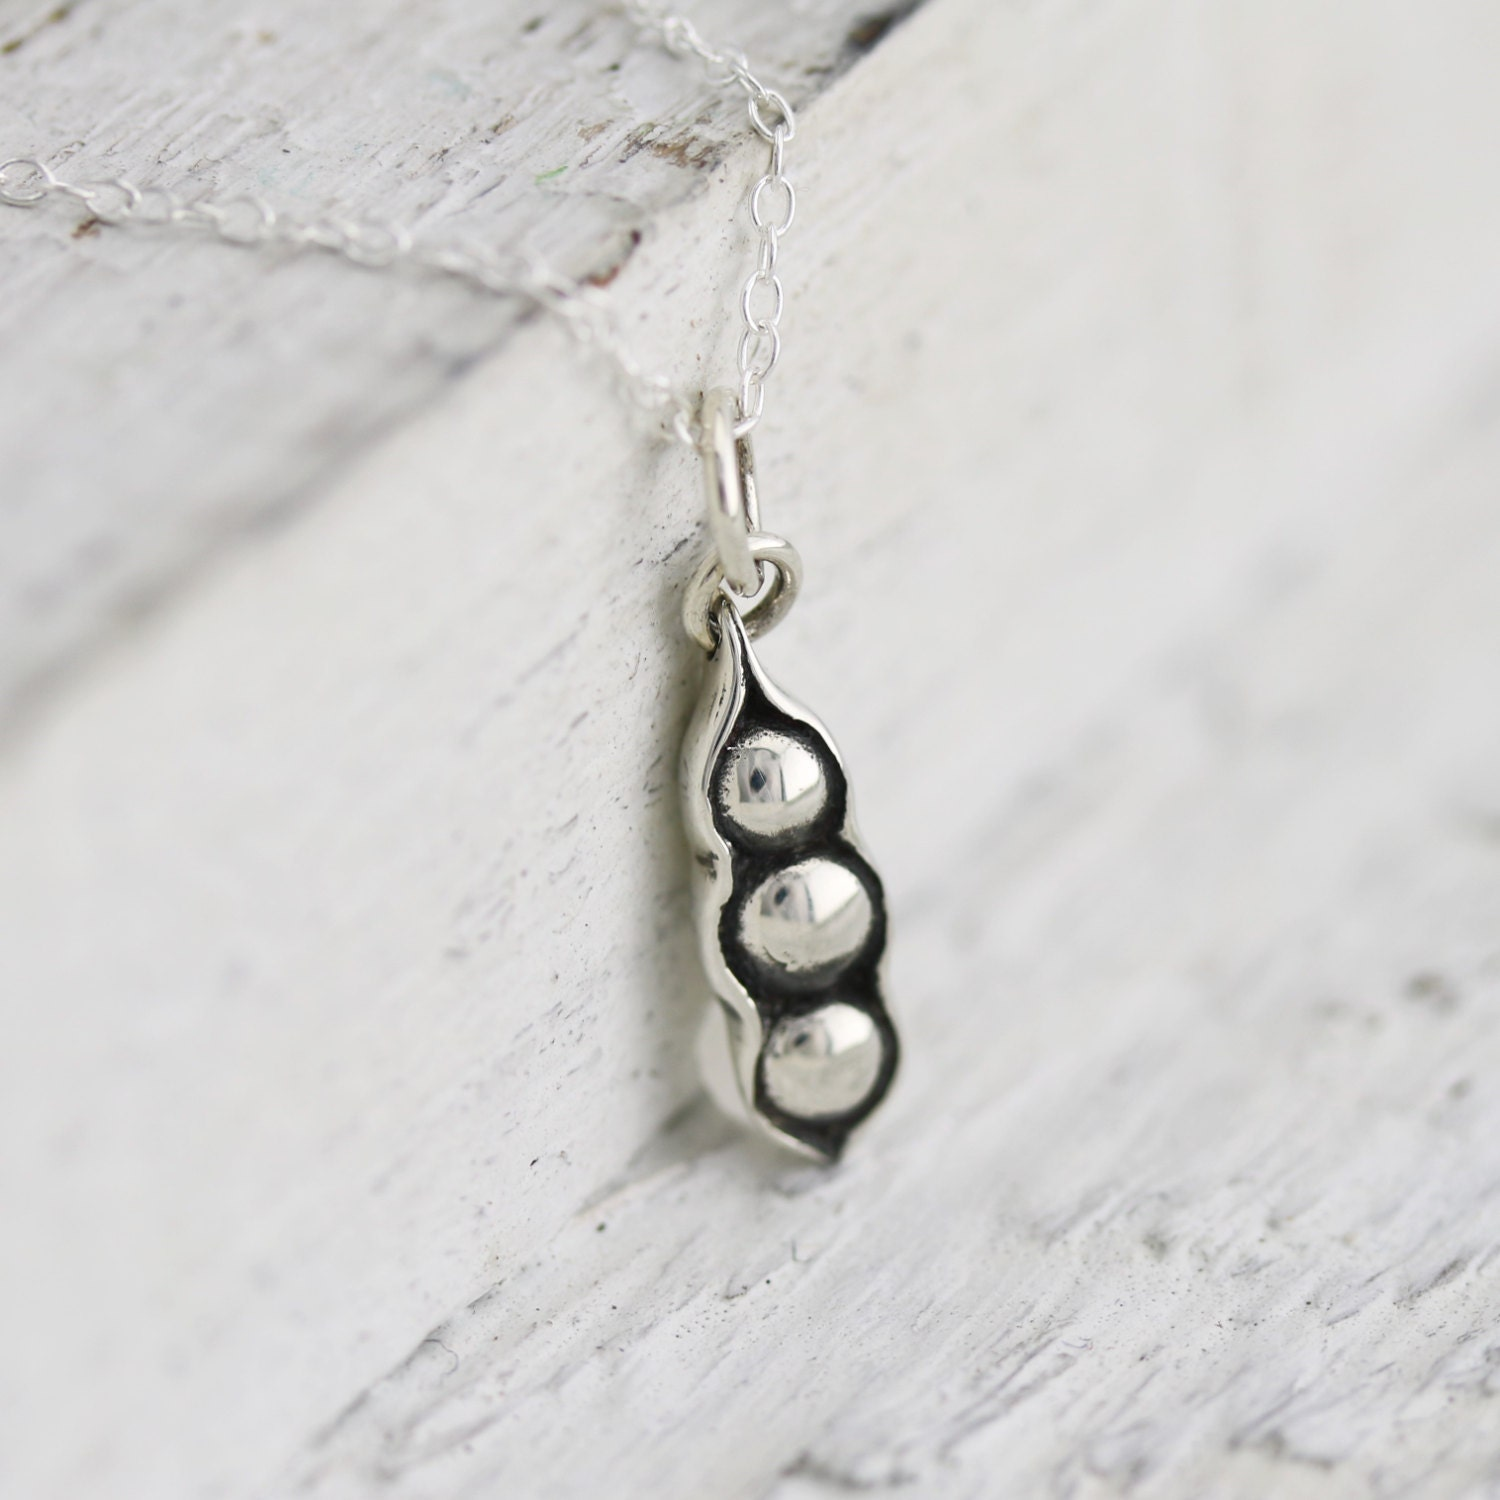 three peas in a pod necklace sterling silver three peas in a